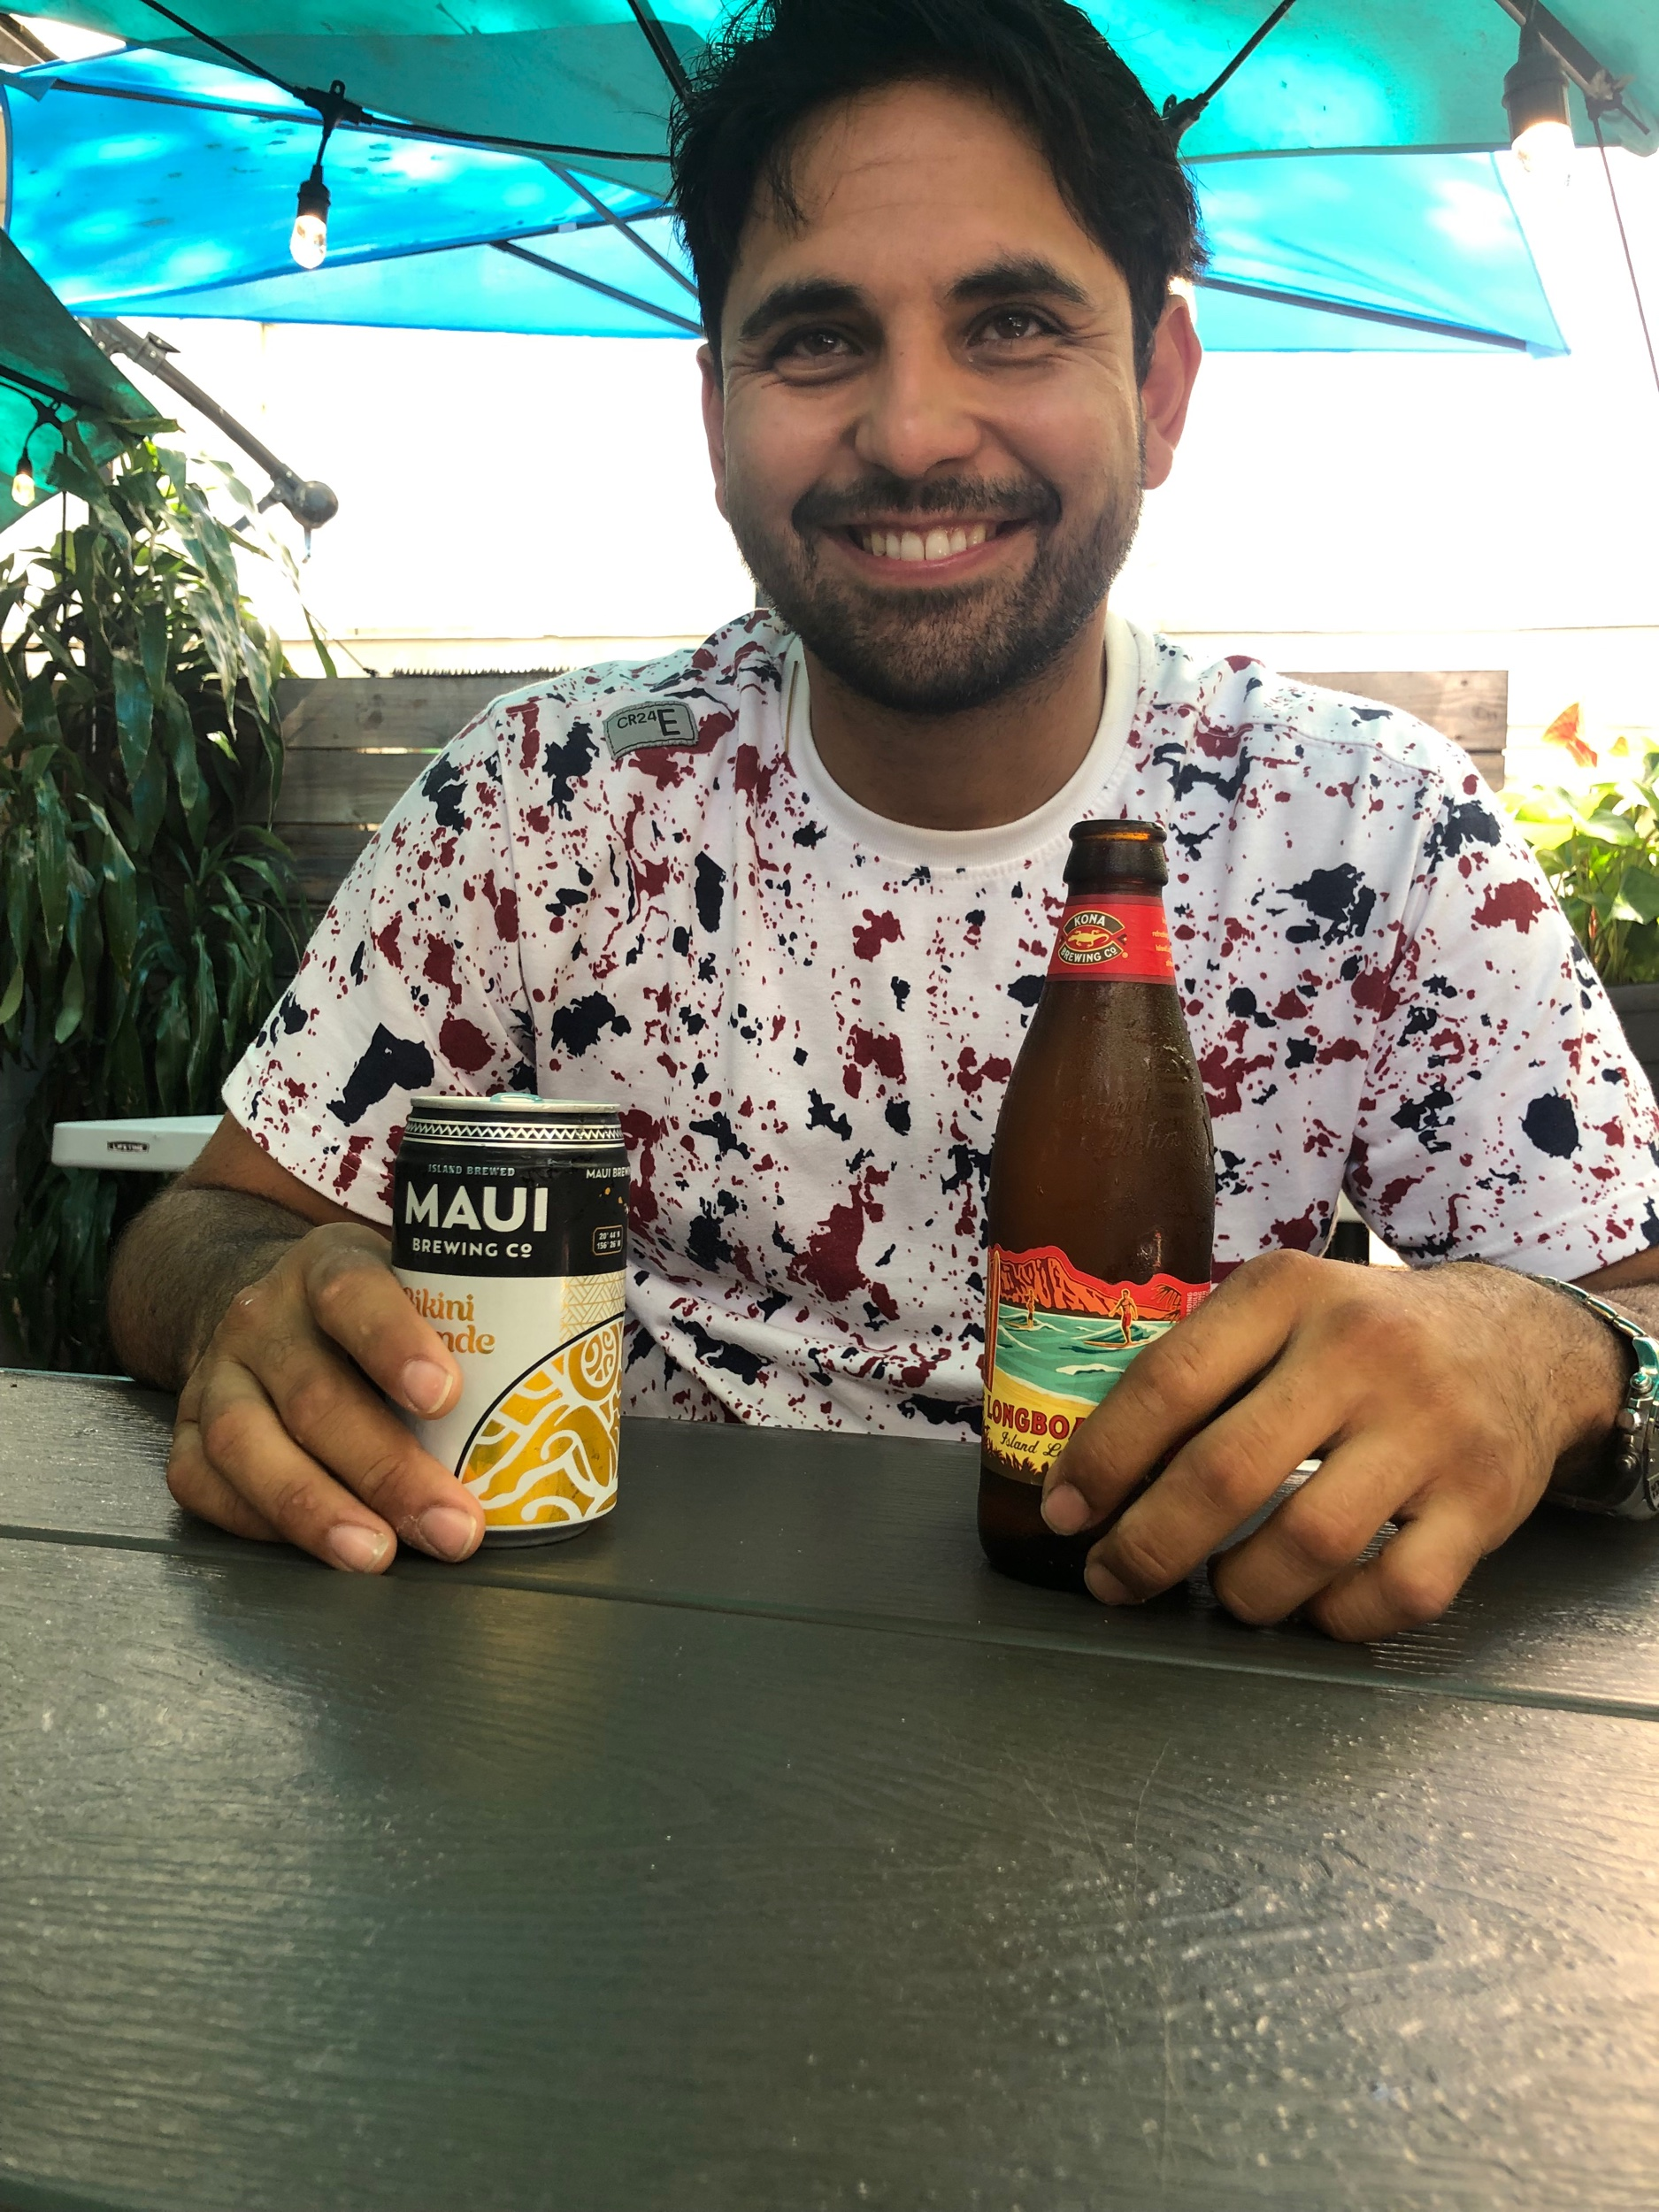 His smile when he gets beer…